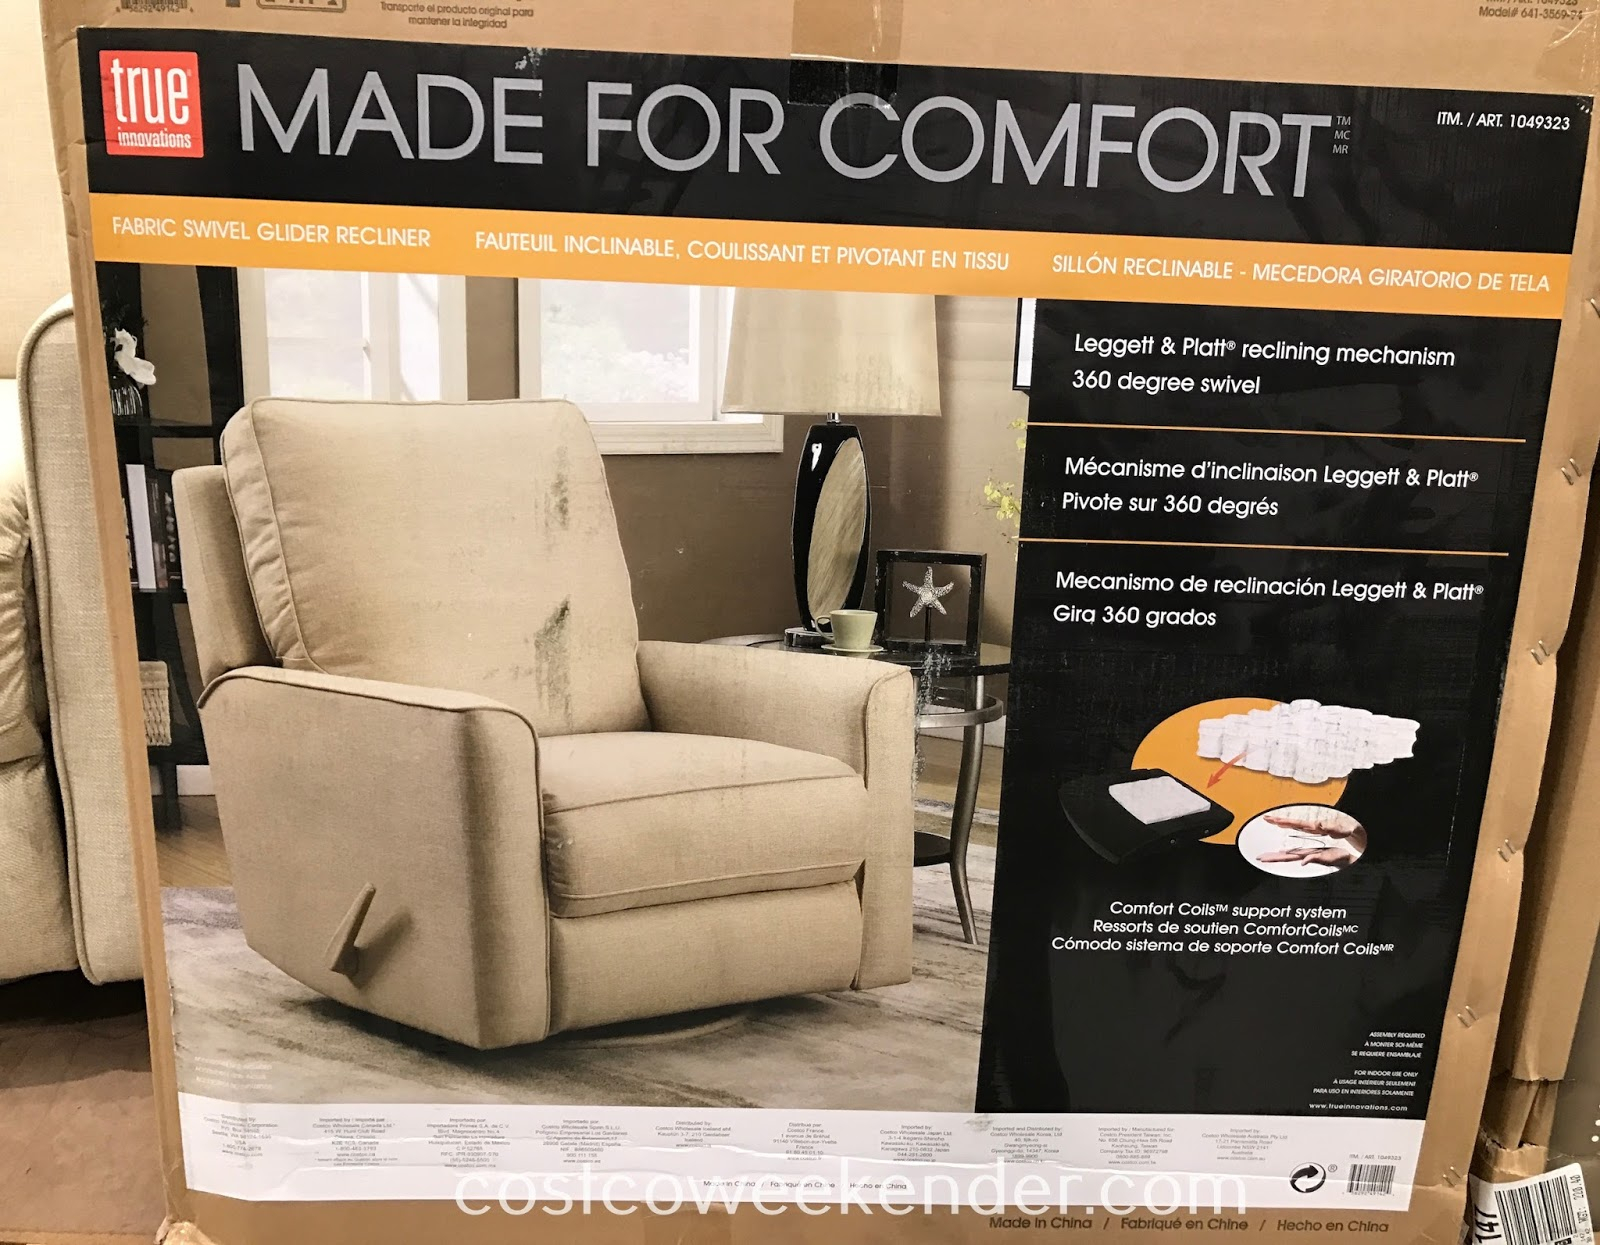 True Innovations Fabric Swivel Glider Recliner Chair | Costco Weekender For Decker Ii Fabric Swivel Glider Recliners (Image 19 of 20)